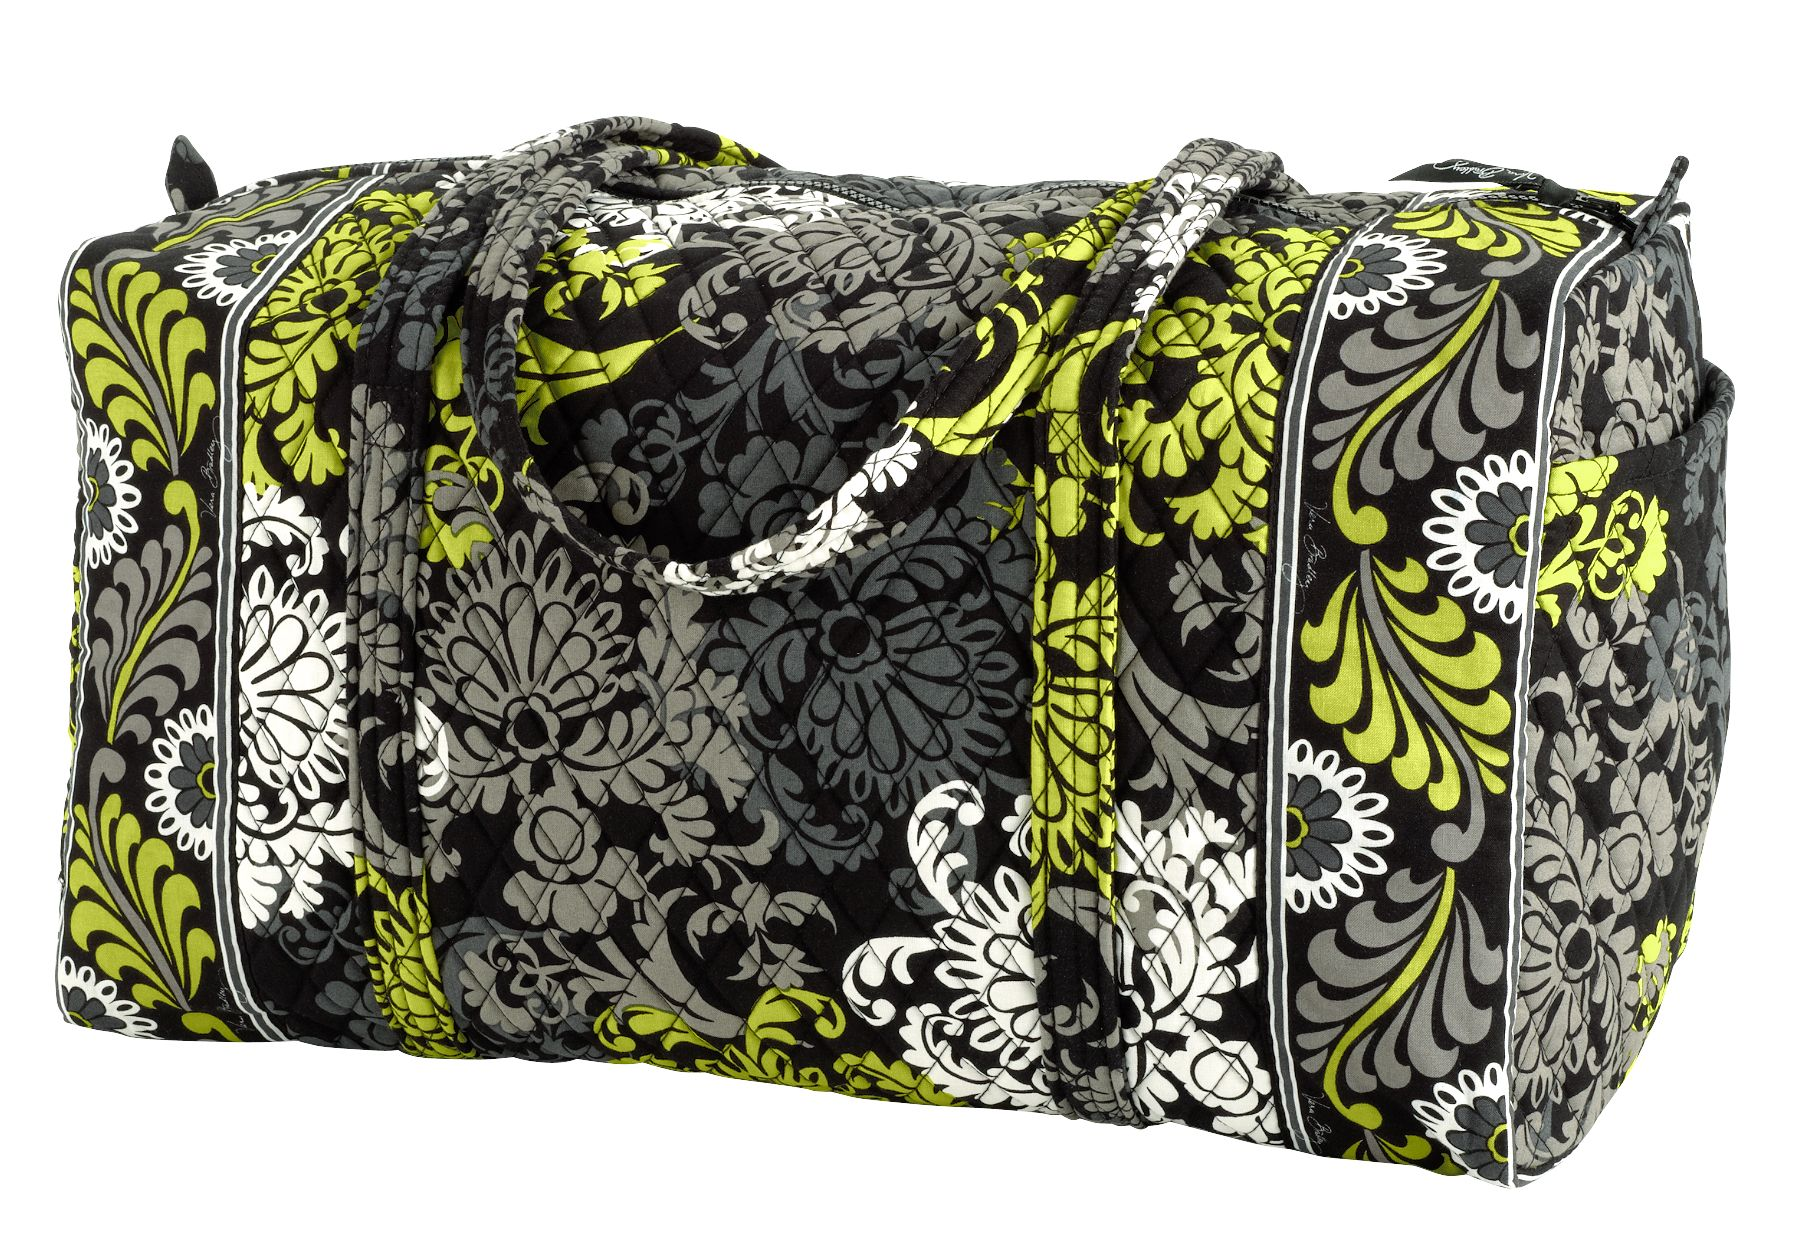 Vera Bradley Travel Bag Review